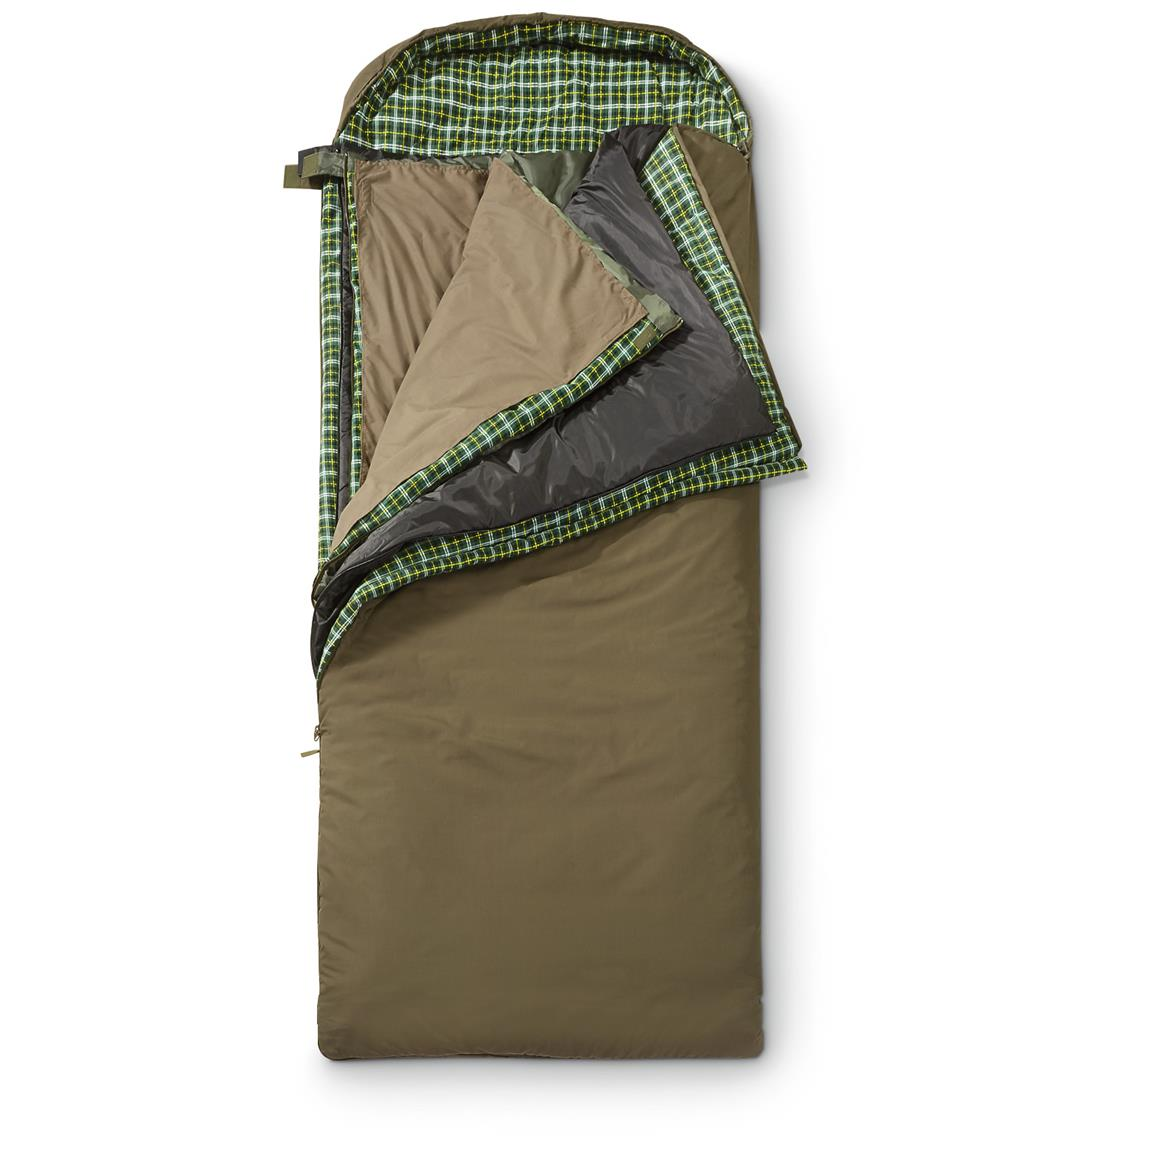 3 layers let your sleep in 6 ways: • Sleep on layer 1, cover with 2 • Sleep on 2 layers, cover with 1 • Outer Bag only •  Inner bag only • Outer and Inner Bags zip together to form a double bag • Add all layers together